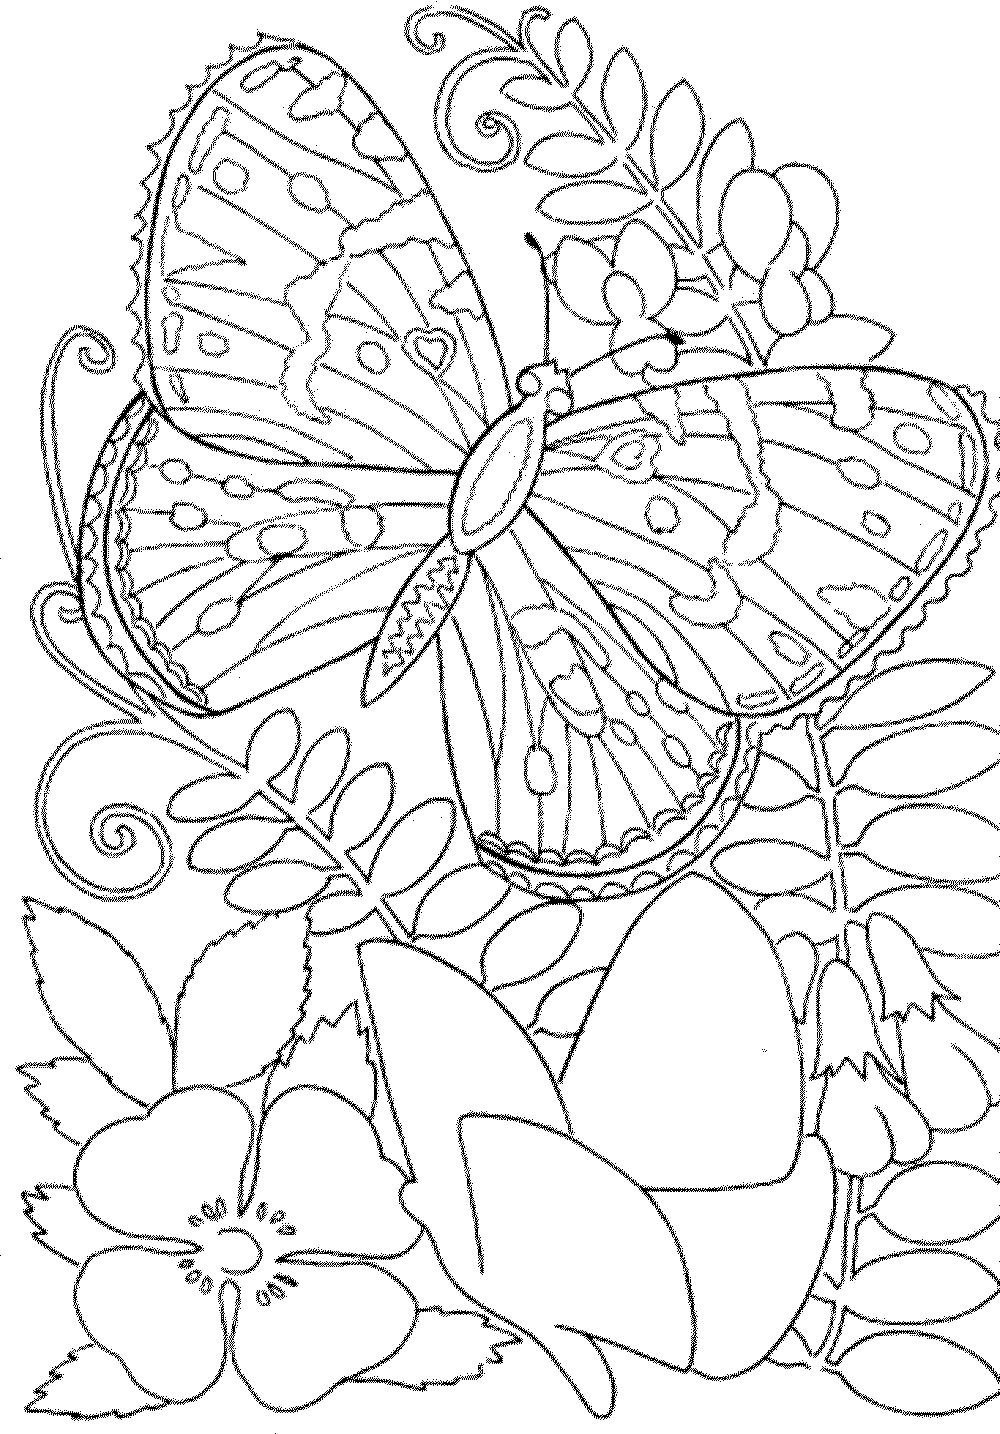 Free Printable Spring Coloring Pages For Adults - Coloring Home - Free Printable Spring Coloring Pages For Adults